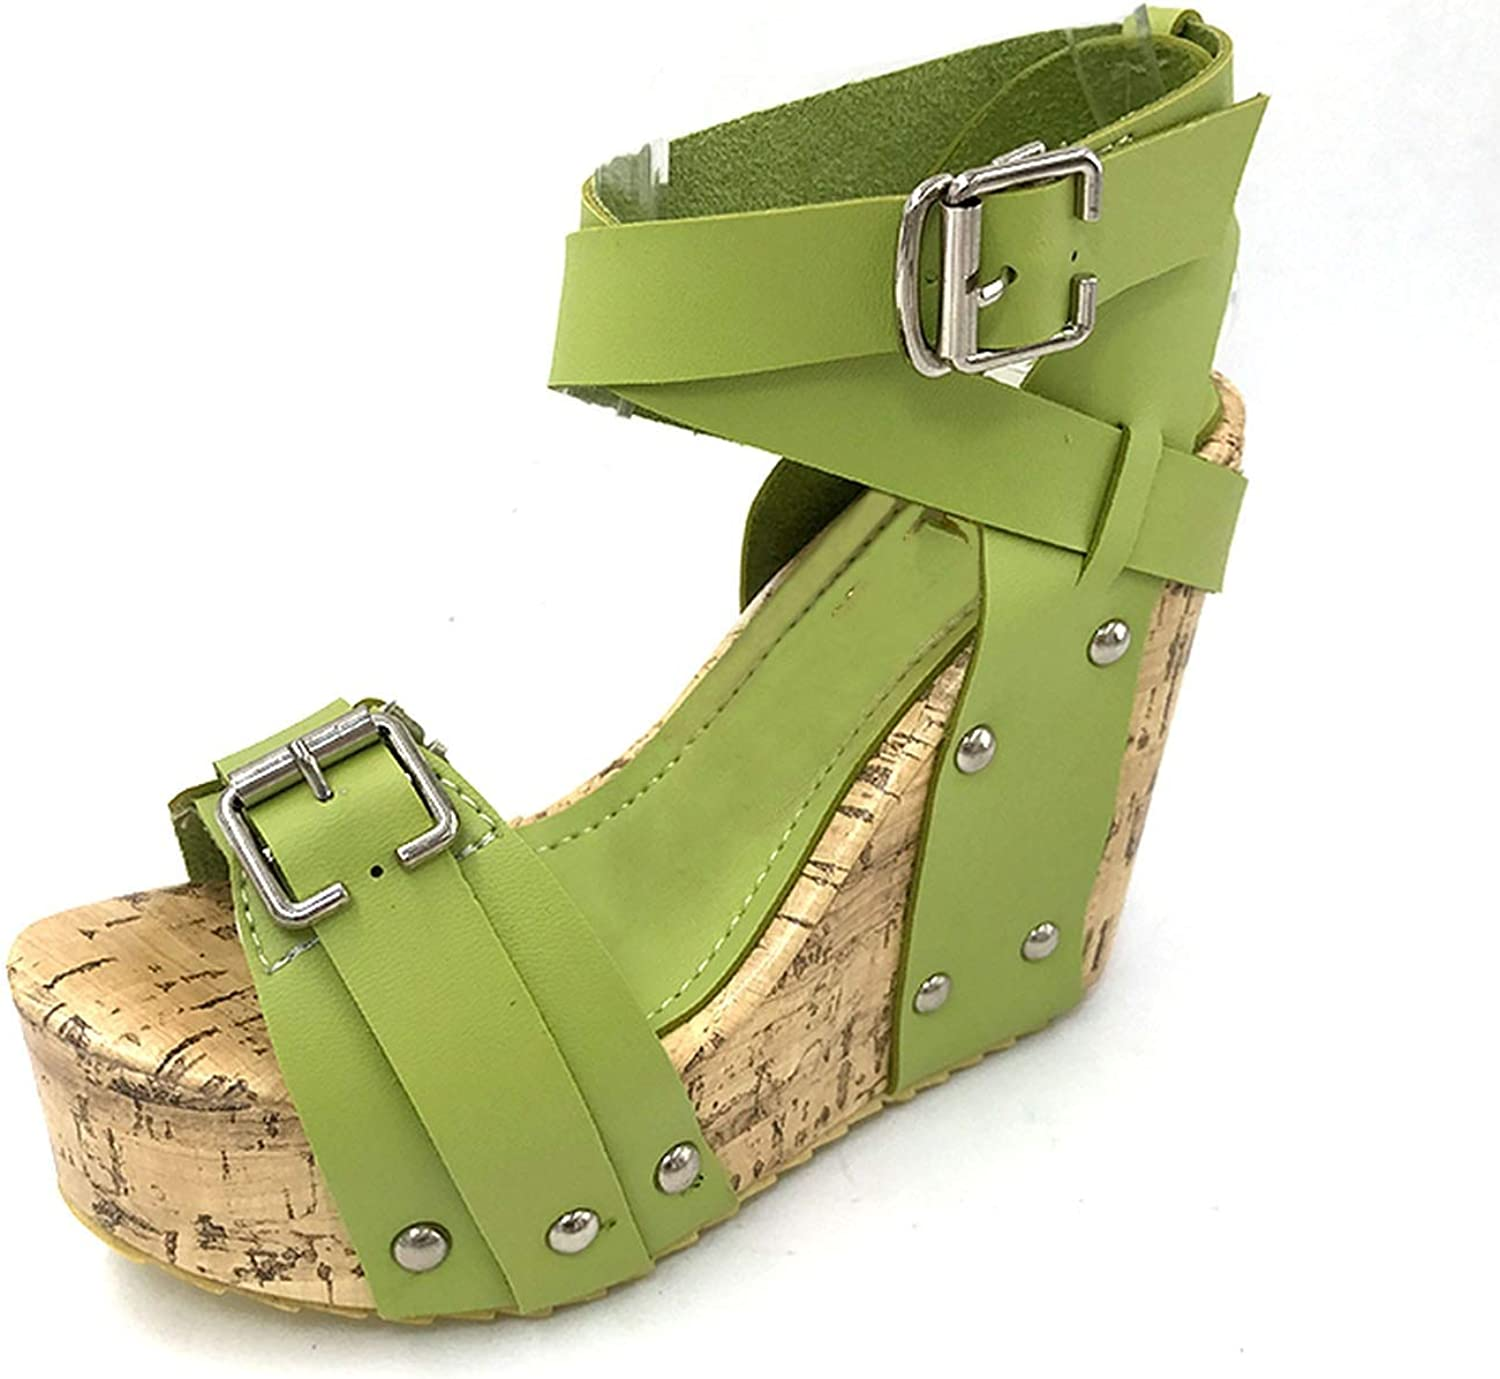 Fairly Heel Wedge shoes Fashion Dress Sexy Slippers shoes P5850 EUR Size 33-40,Green,9